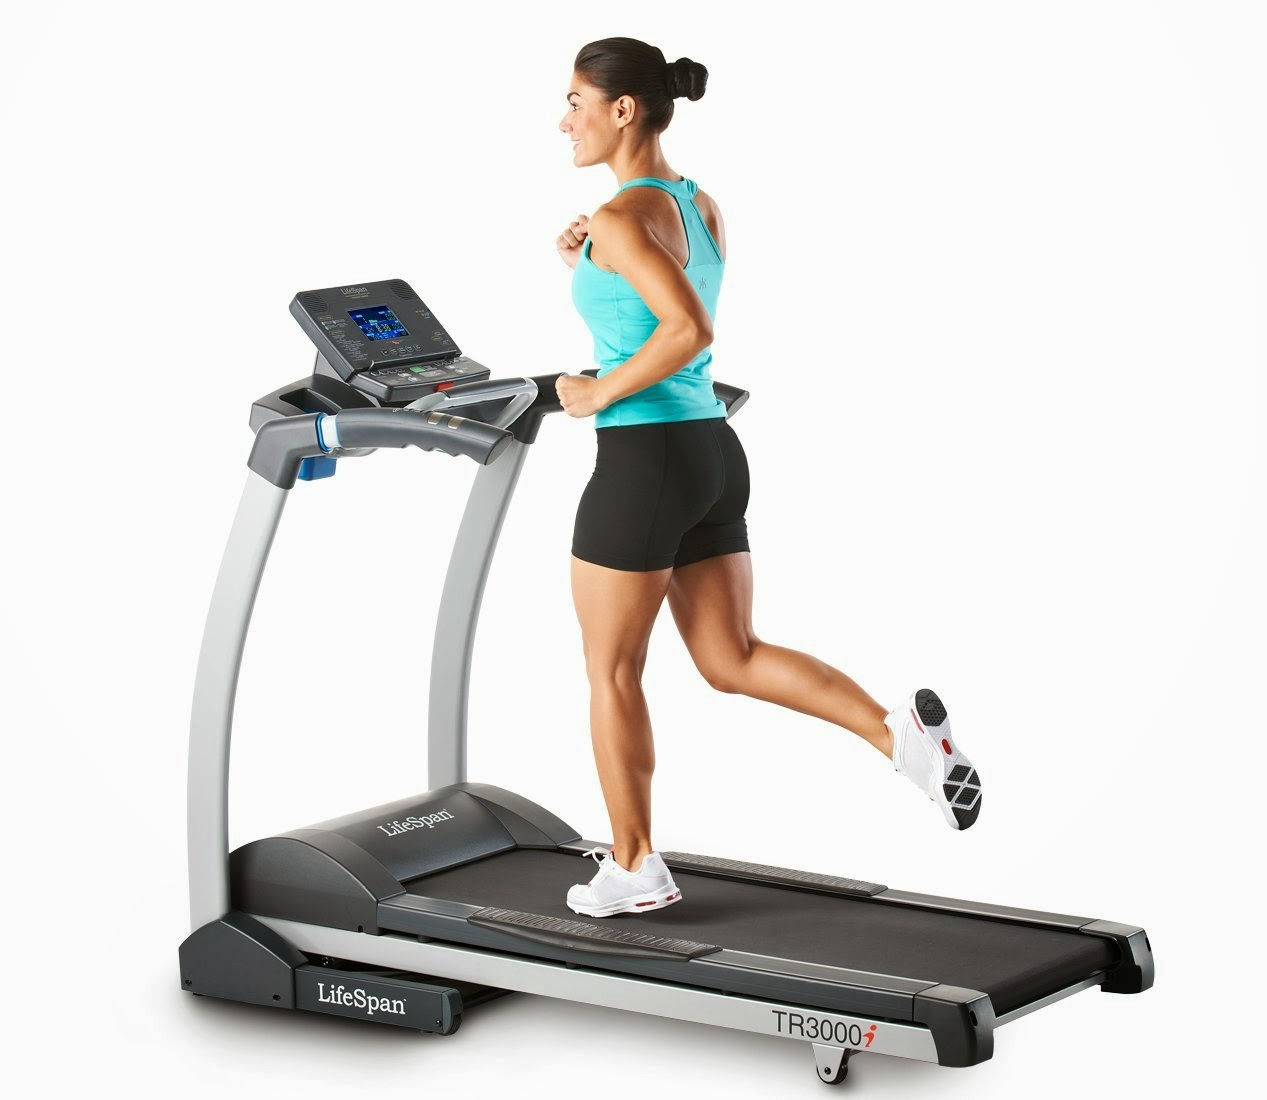 LifeSpan Fitness TR3000i Folding Treadmill, picture, review features & specifications, compare with LifeSpan Fitness TR4000i